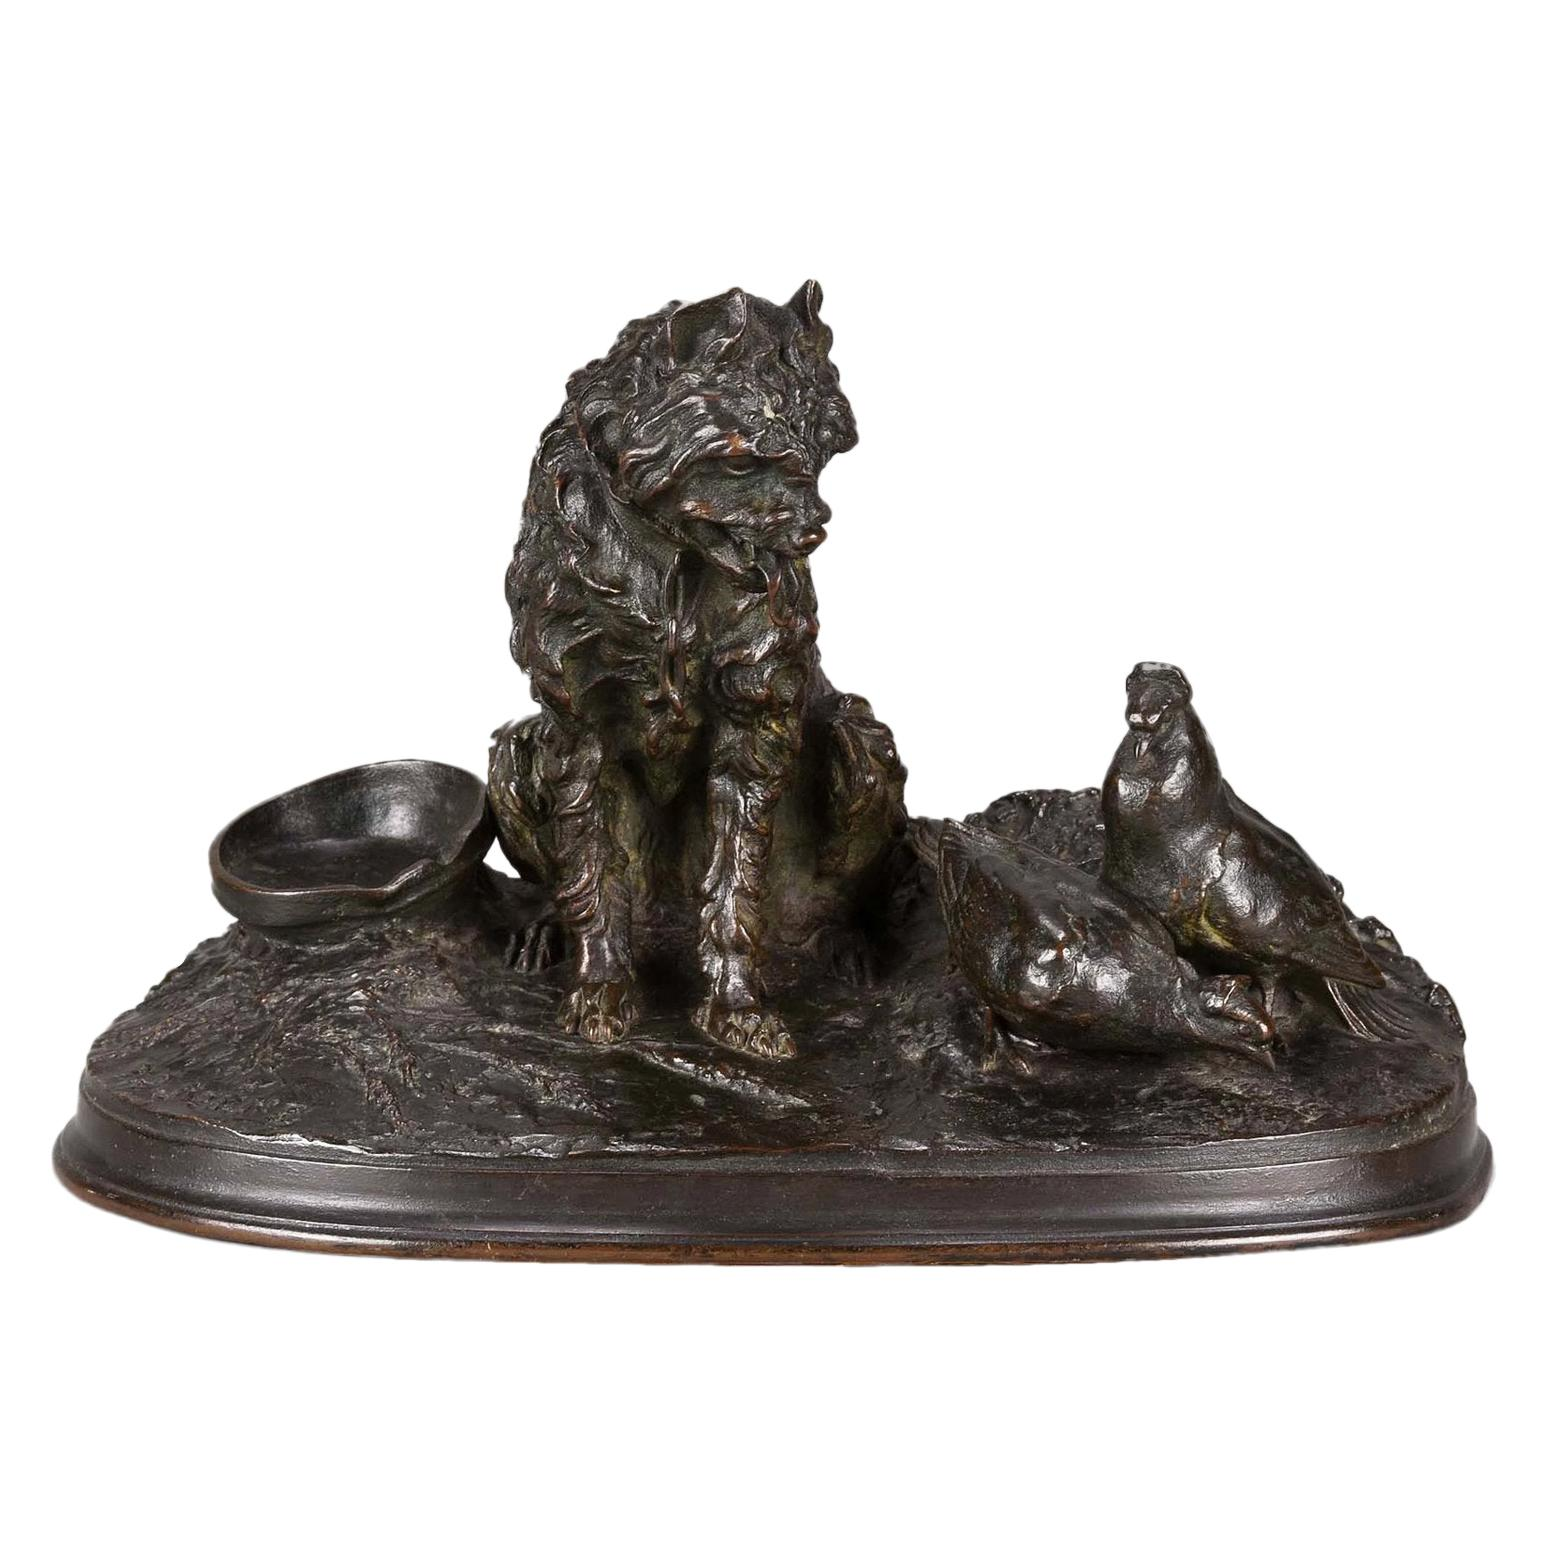 French Animalier Bronze Study Entitled 'Chien et Pigeon' by Pierre Jules Mêne